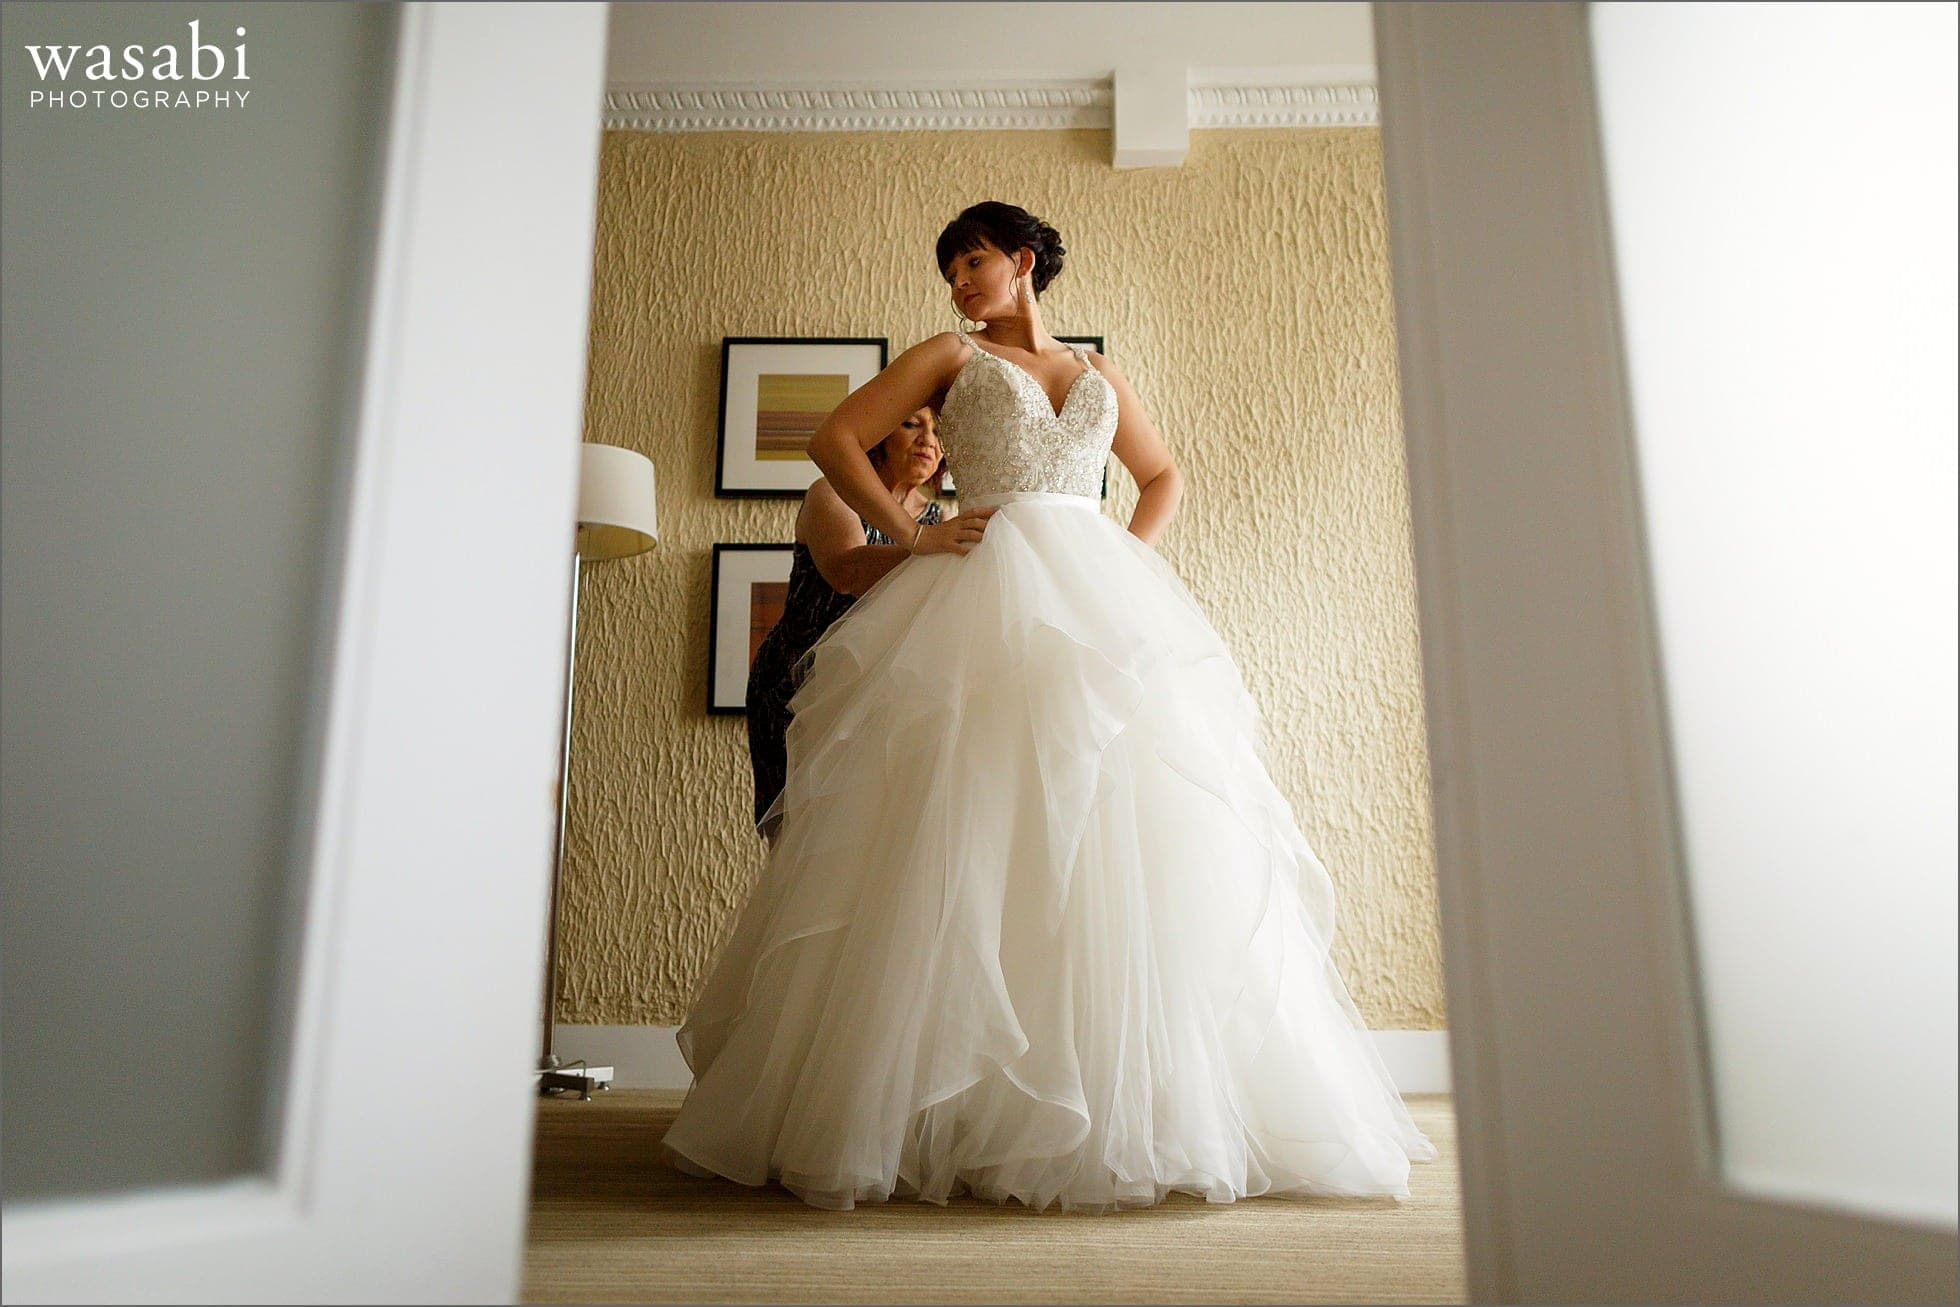 brides mom helps her into dress while getting ready for her wedding at Raffaello Hotel in Chicago